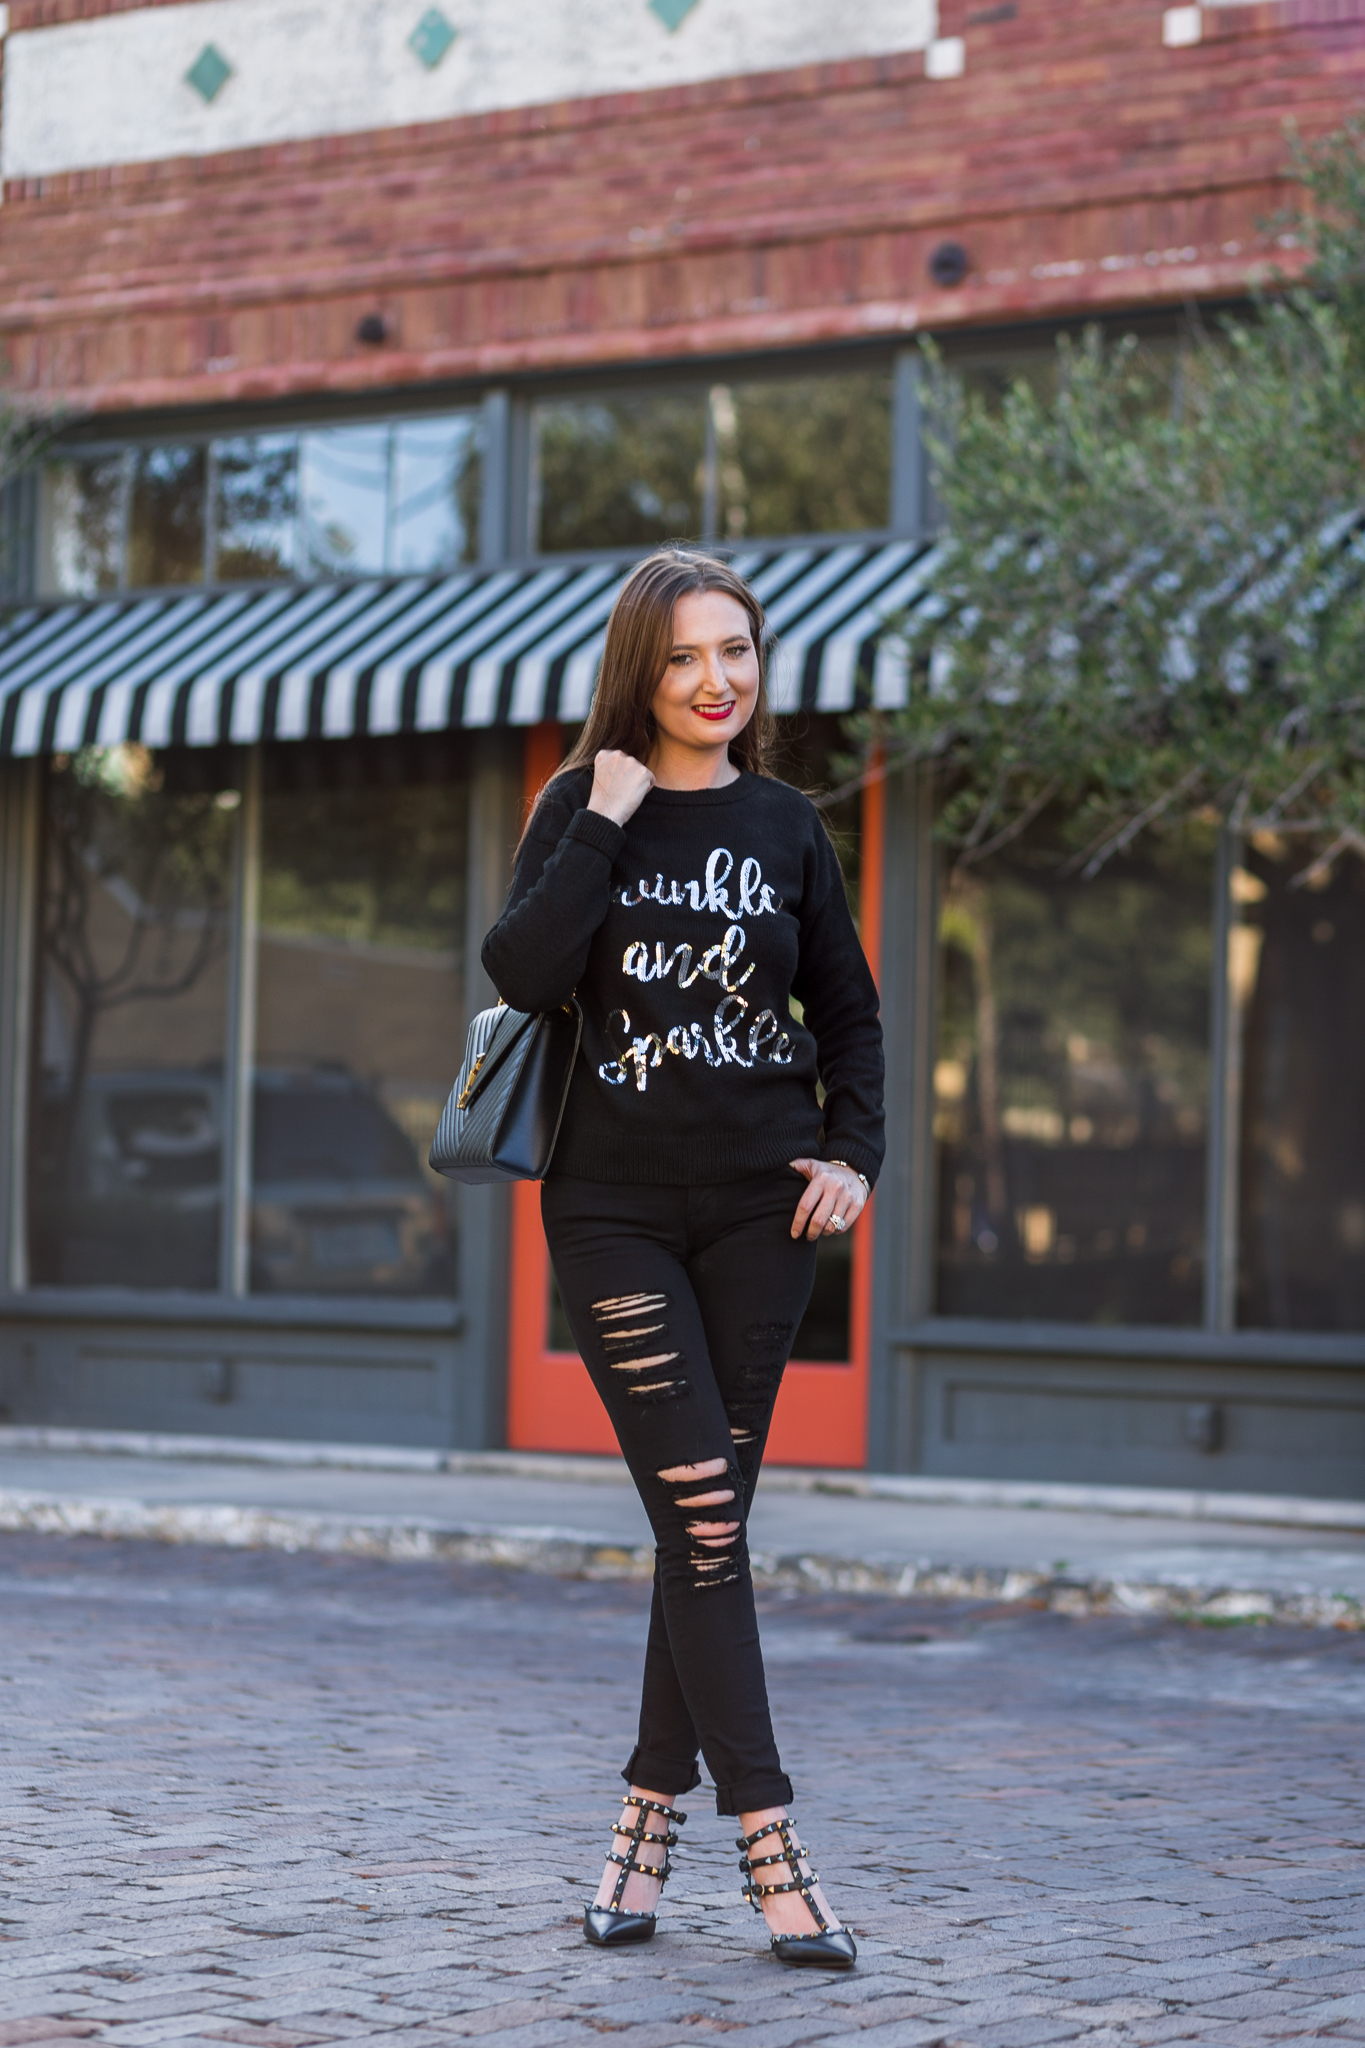 The best holiday sweater (for 32 dollars!)| holiday sweater, sequin sweater, asos sweater, frame denim, black distressed denim, black ripped jeans, saint Laurent shoulder bag, ysl bag, Valentino rockstud noir, fall fashion, fall fashion inspiration, frame le color rip skinny jeans, new look twinkle and sparkle sweater, fall fashion 2017